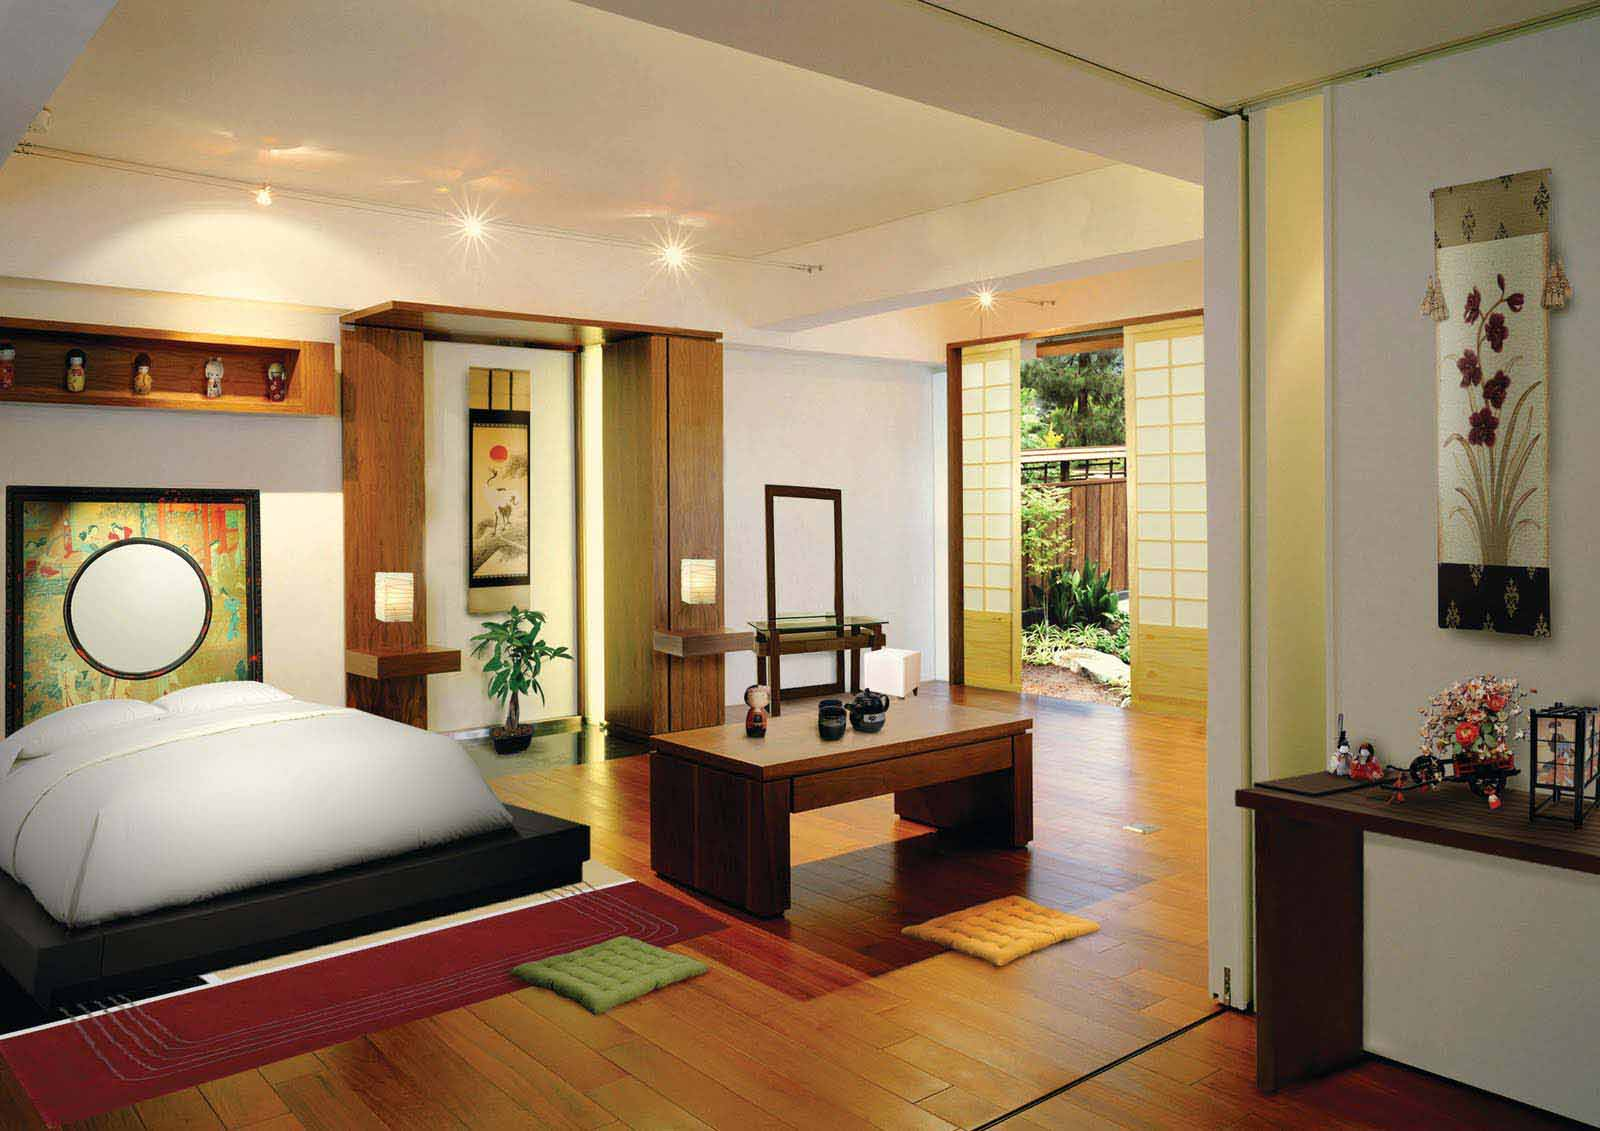 Japanese Zen Bedroom: Small Master Bedroom Ideas